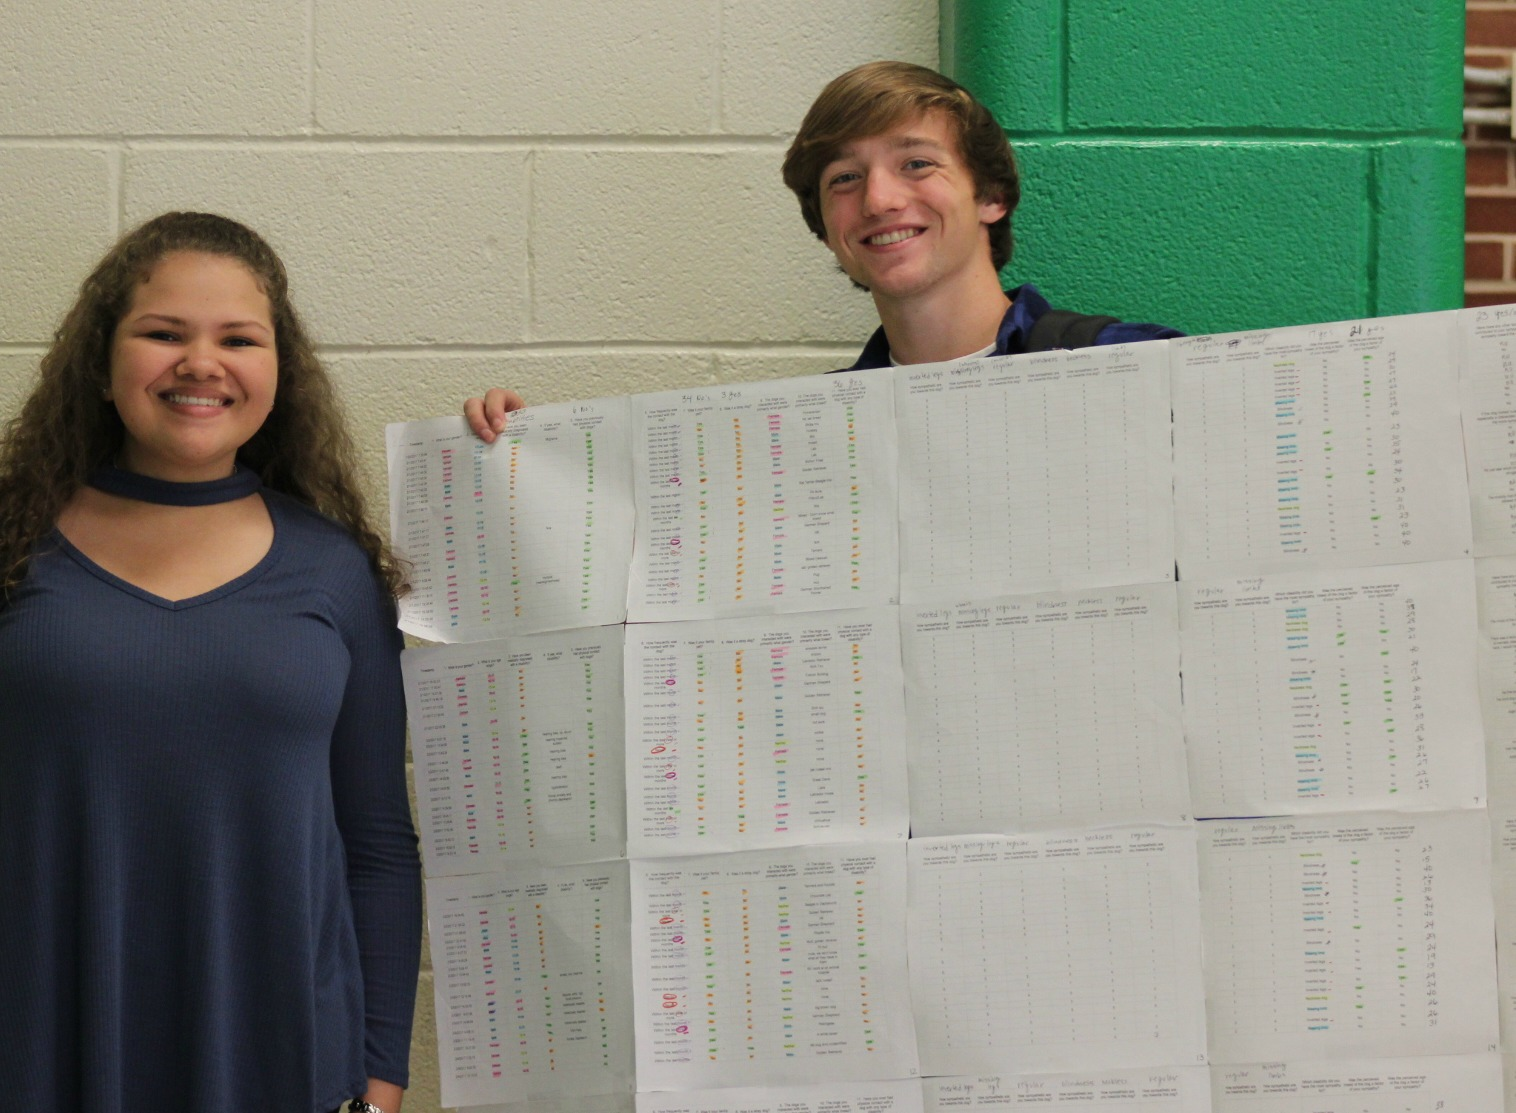 Larae Crenshaw (12) with her data of her surveys for NCUR.